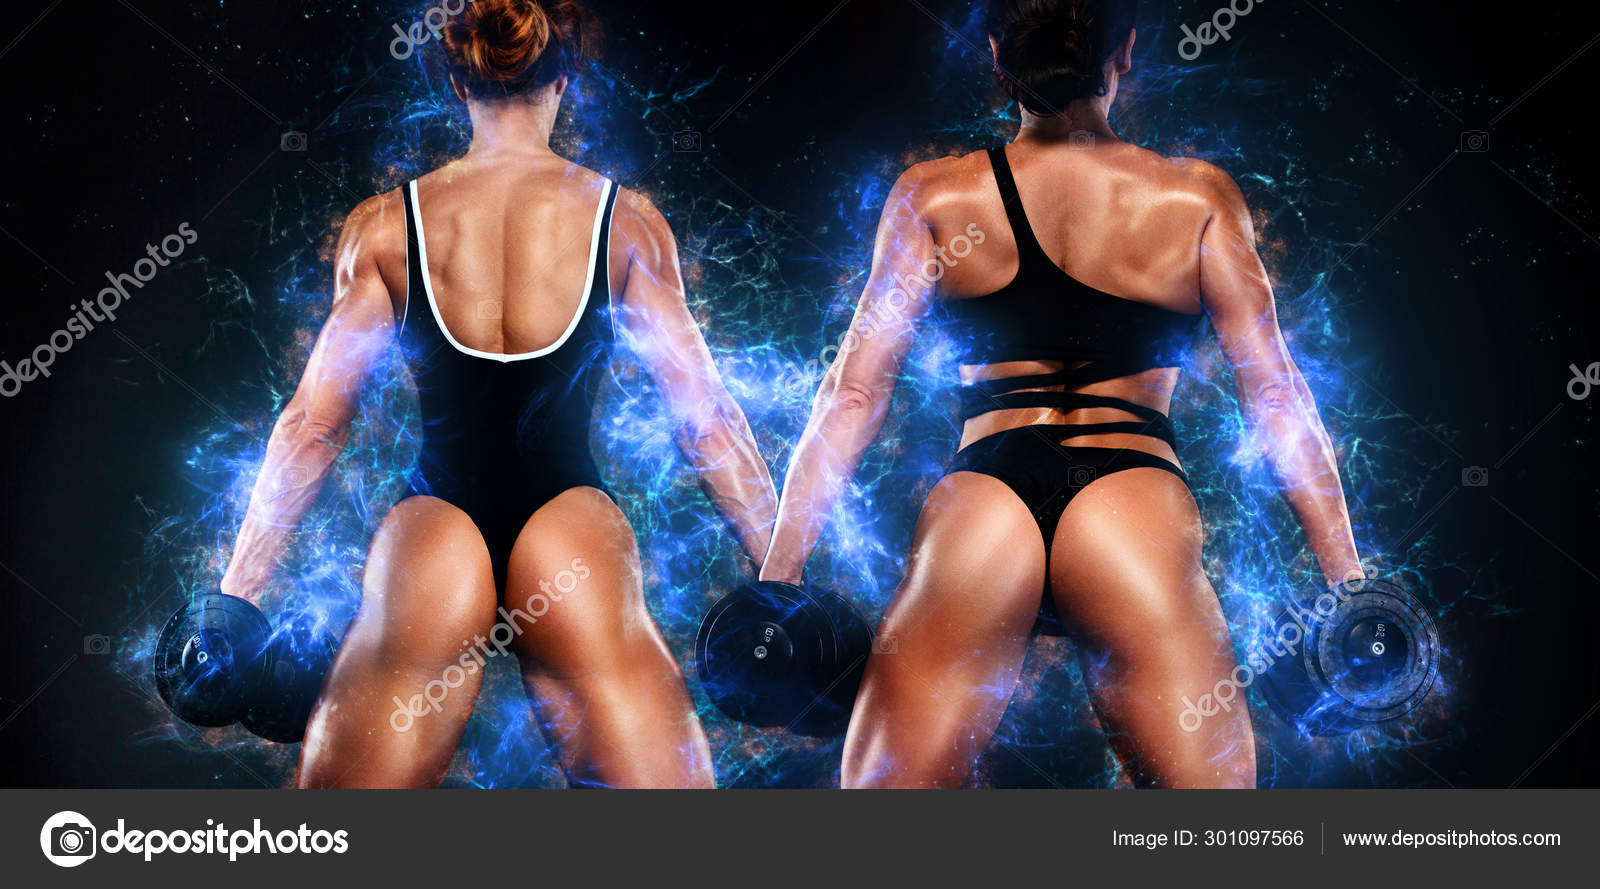 Two Sporty And Fit Women Athletes Bodybuilders Workout And Fitness Motivation Black Background Energy Bodybuilding Concept Sexy Ass In Thong Stock Photo C Mikeorlov 301097566 Healthy food for women who want to get fit. two sporty and fit women athletes bodybuilders workout and fitness motivation black background energy bodybuilding concept sexy ass in thong stock photo c mikeorlov 301097566